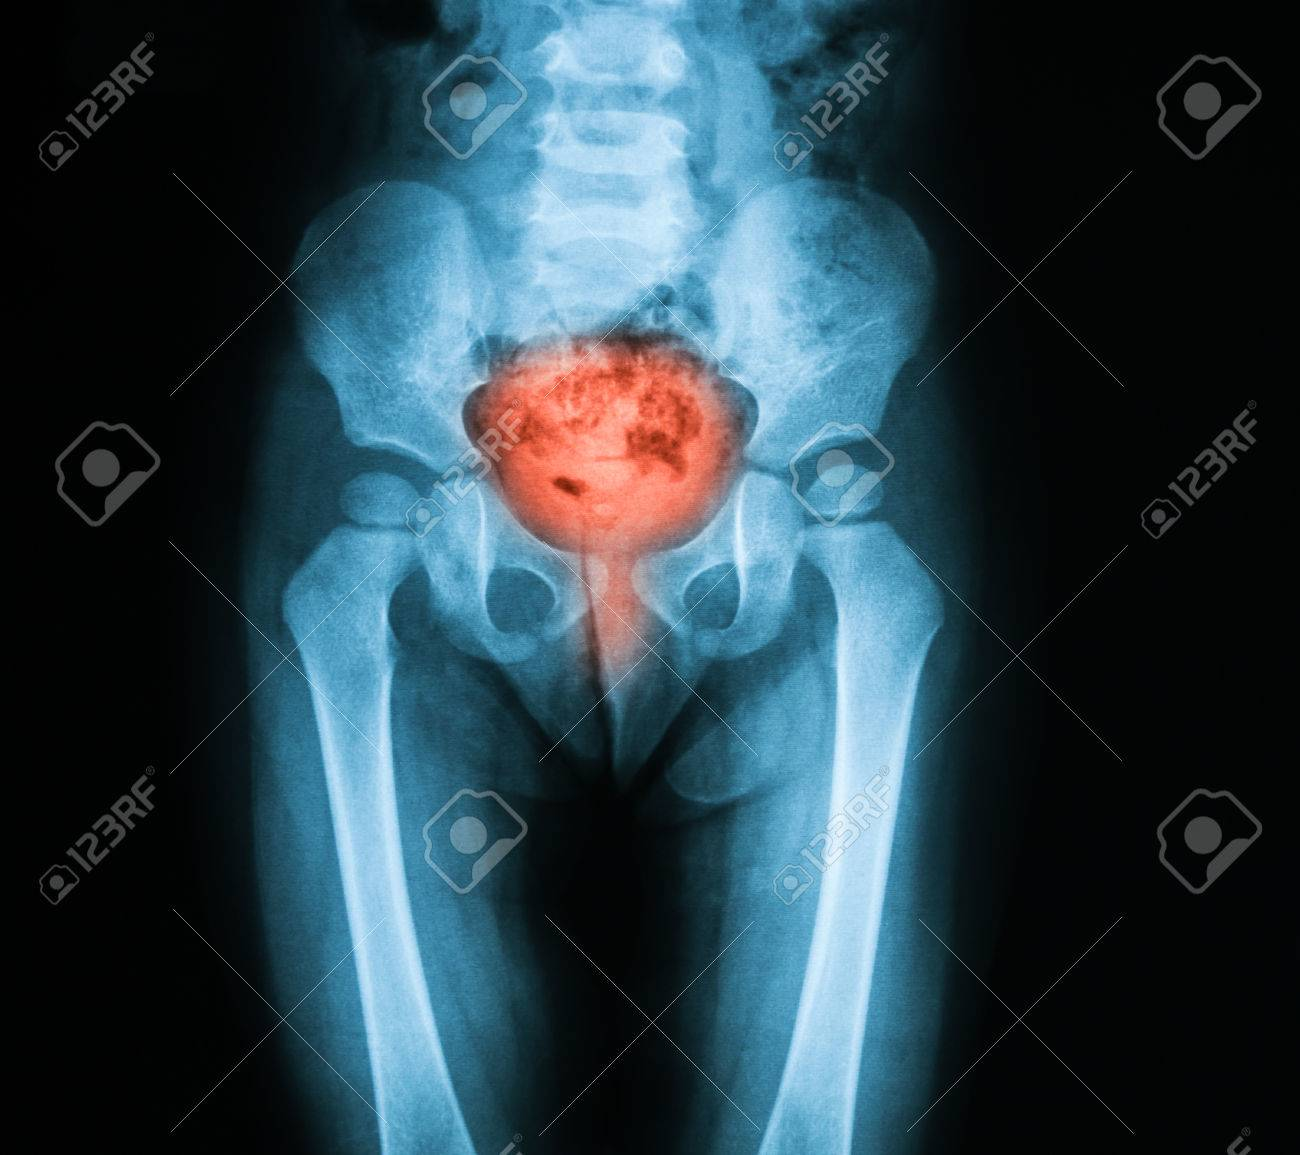 X-ray Image Of Bladder, Showing Cystitis Or Lower Urinary Tract ...